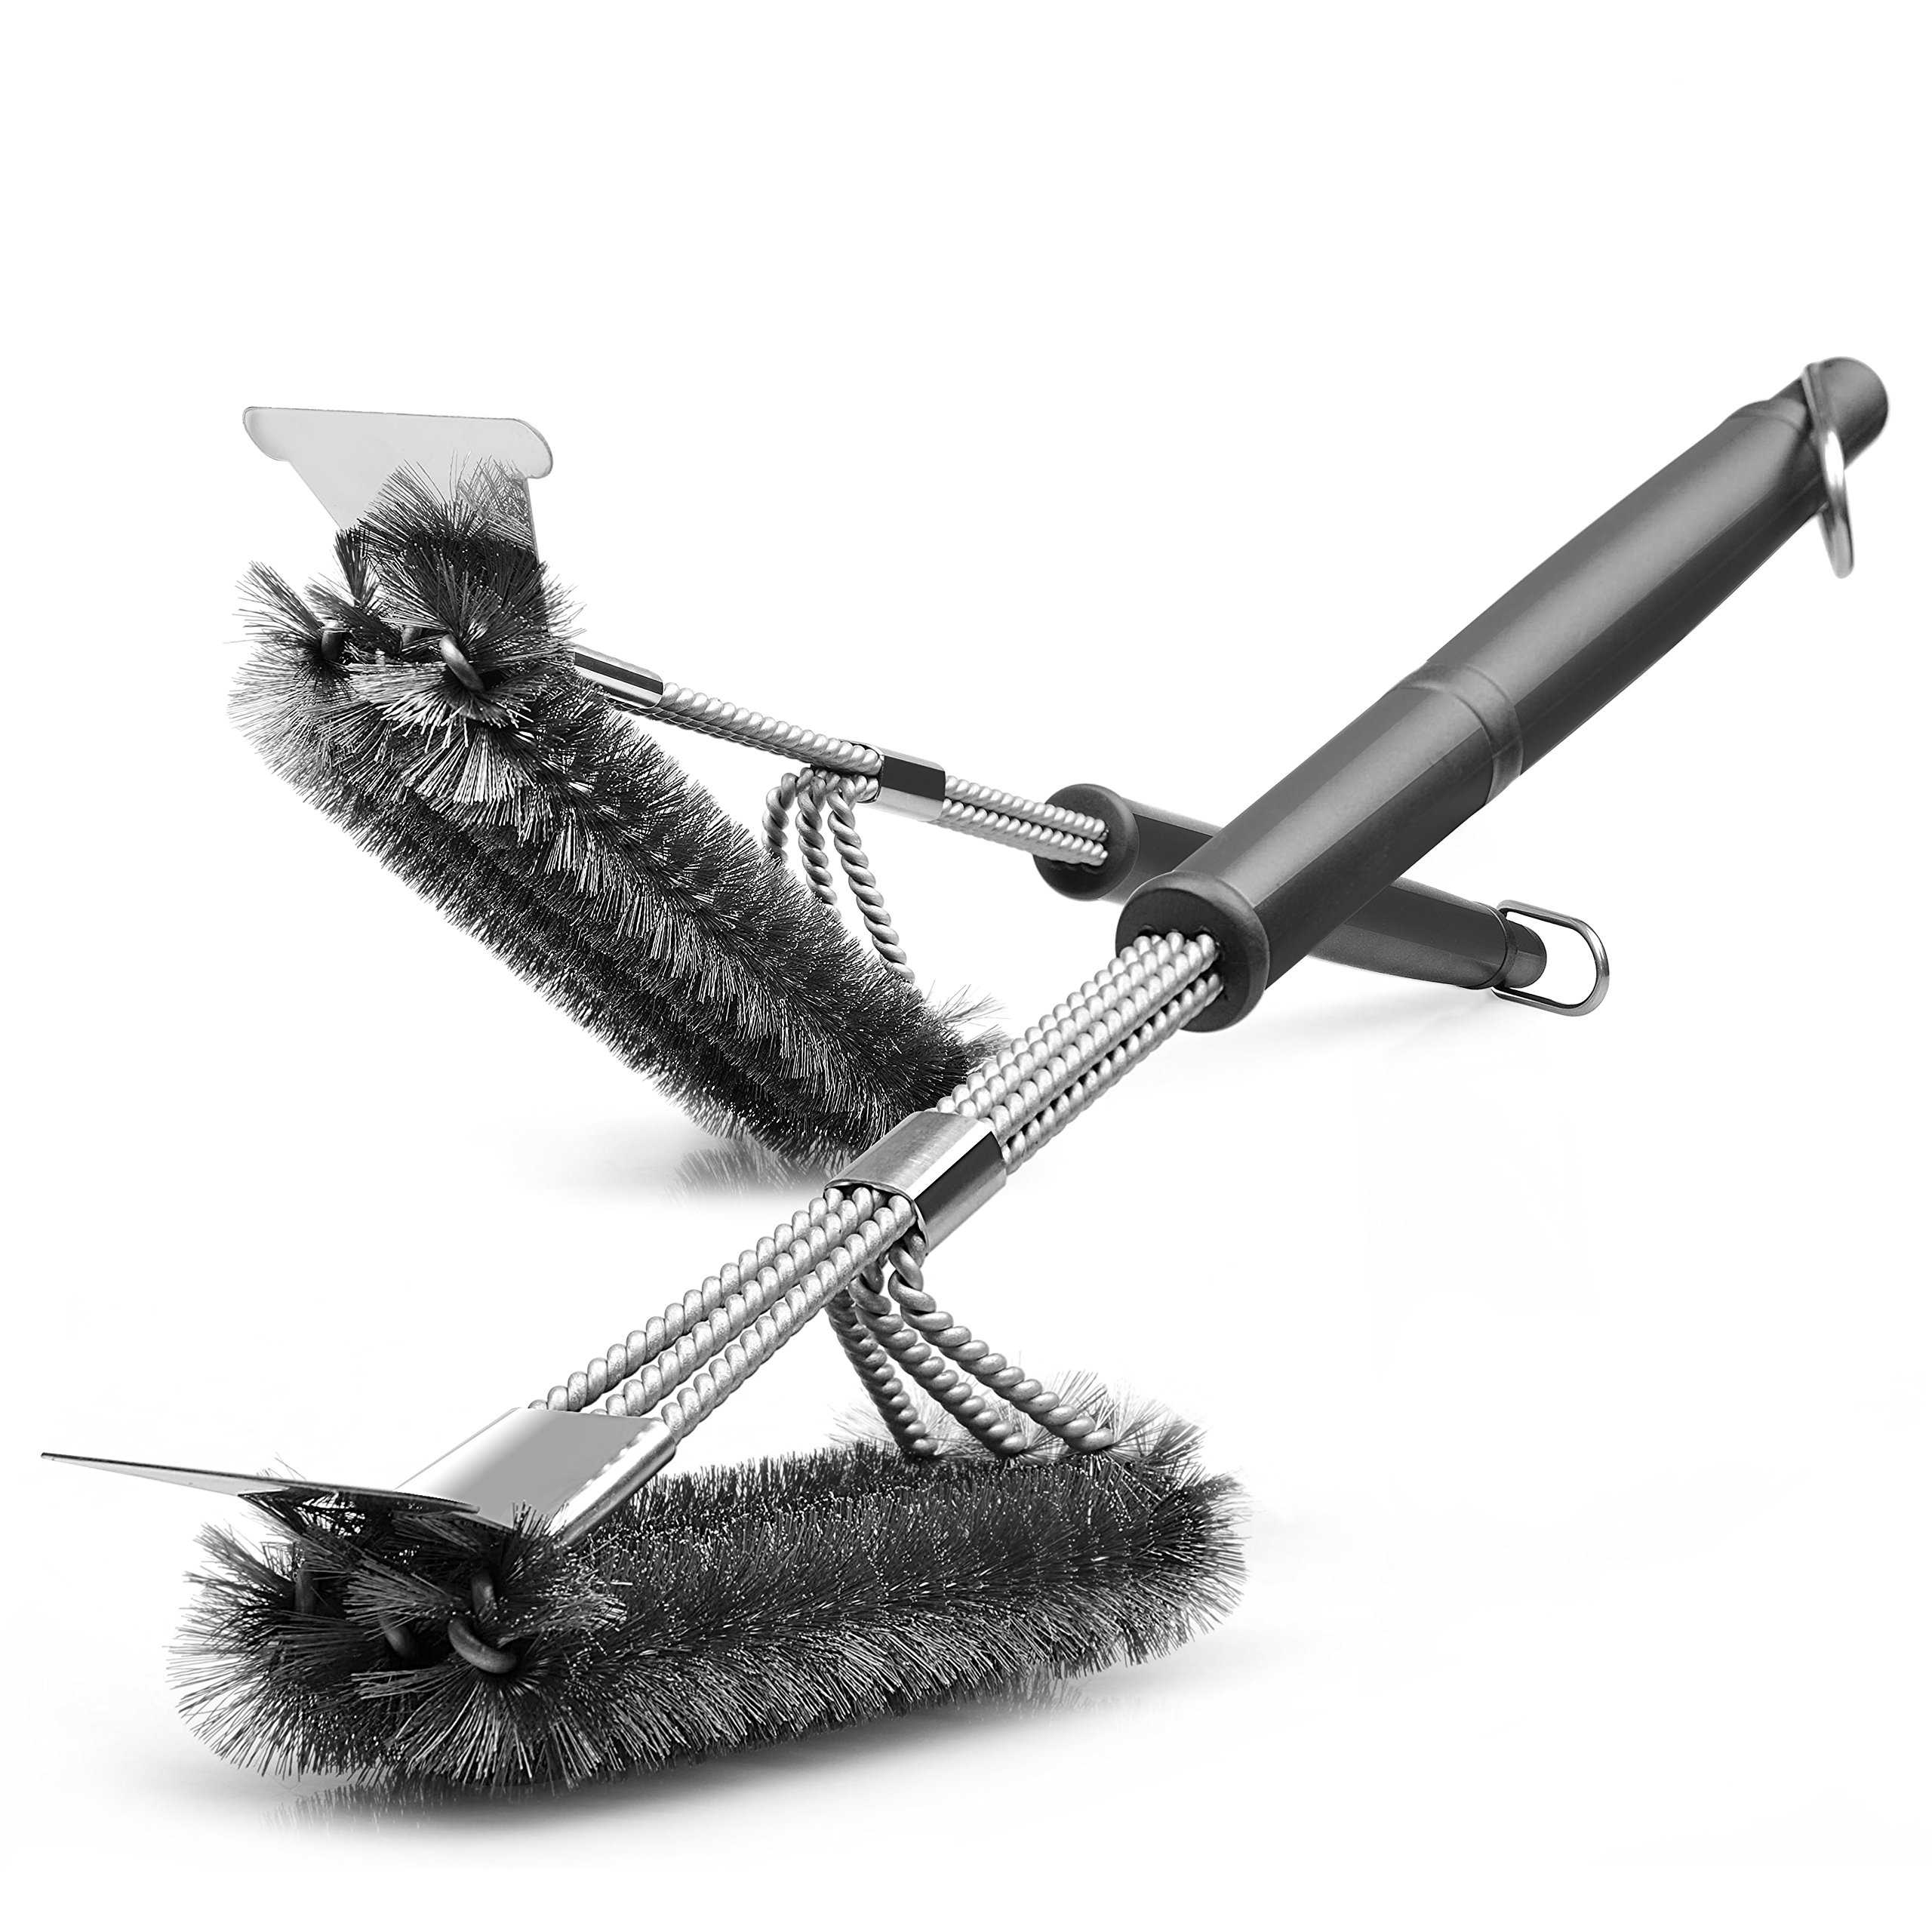 Gama Grill Brush, Pack of 2, Safe Clean Grill Brush Bristle Free Barbecue Cleaning Brush and Scraper 360 Stainless Steel BBQ Triple Head Scrubber Brush for Porcelain,Ceramic,Steel Iron by Gama